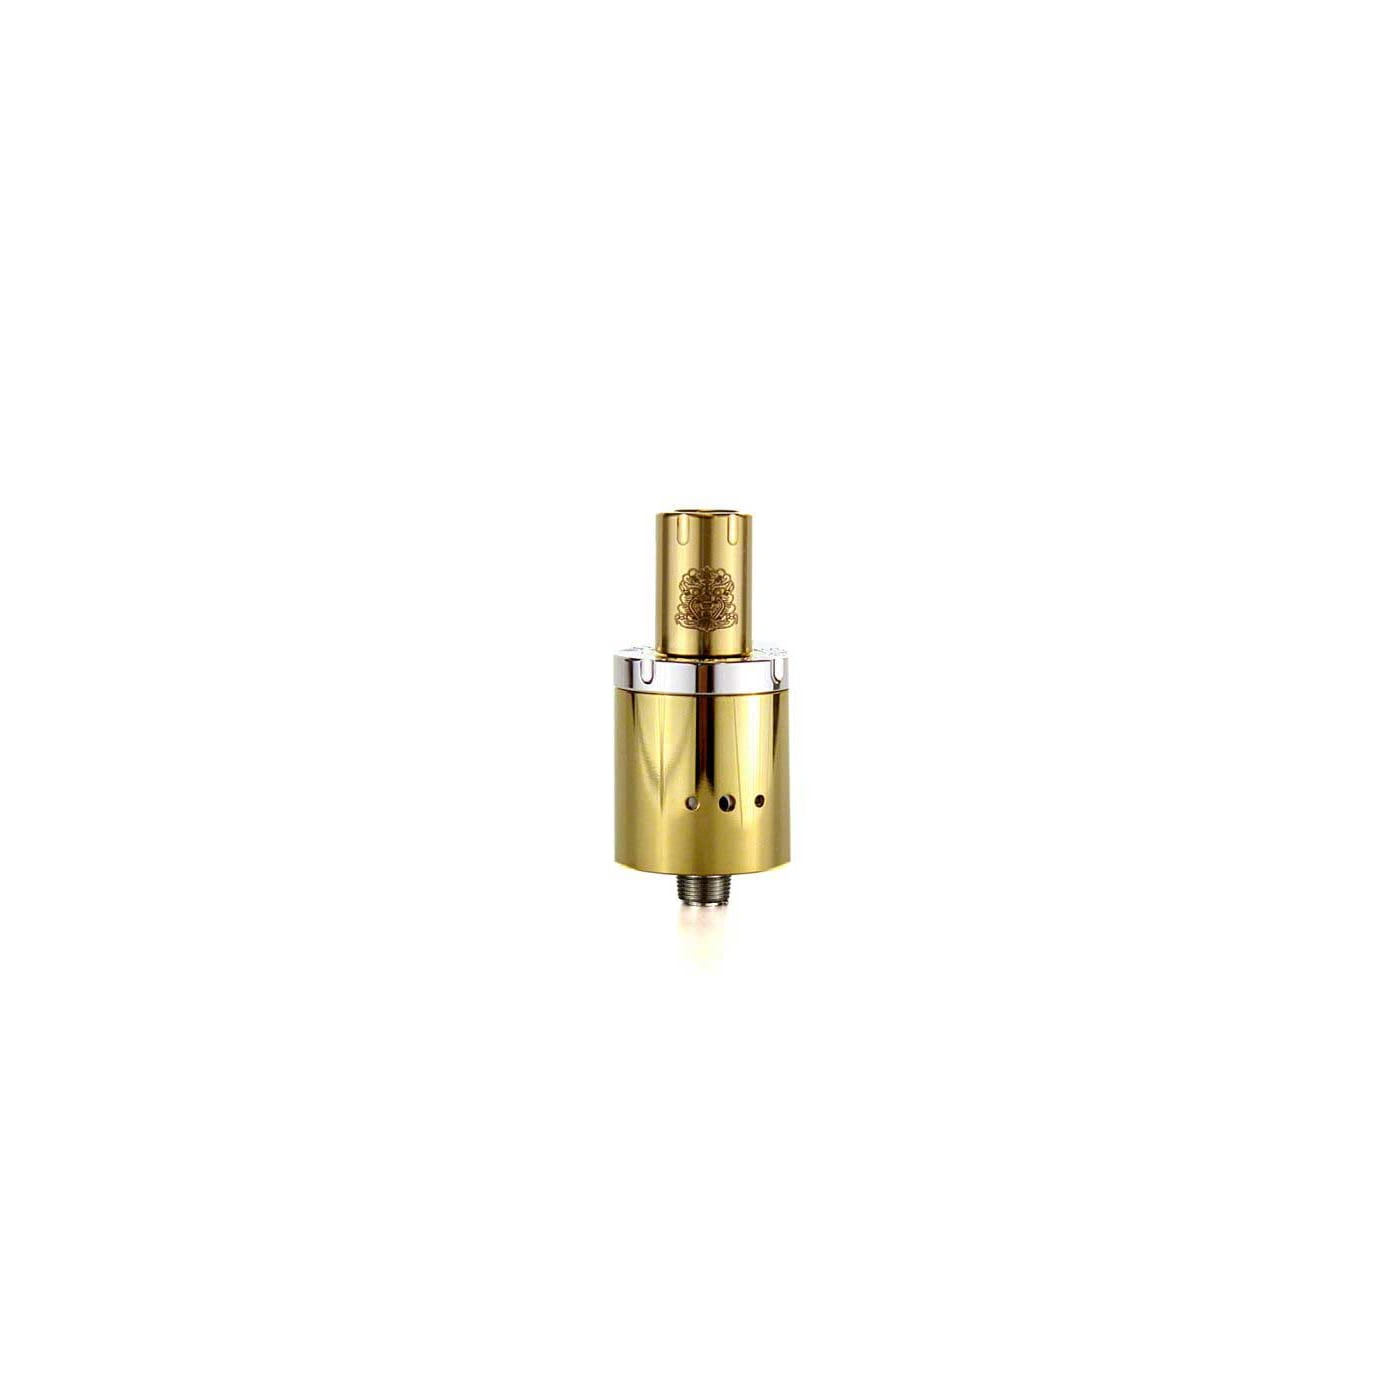 Nucleus Rebuildable Atomizer